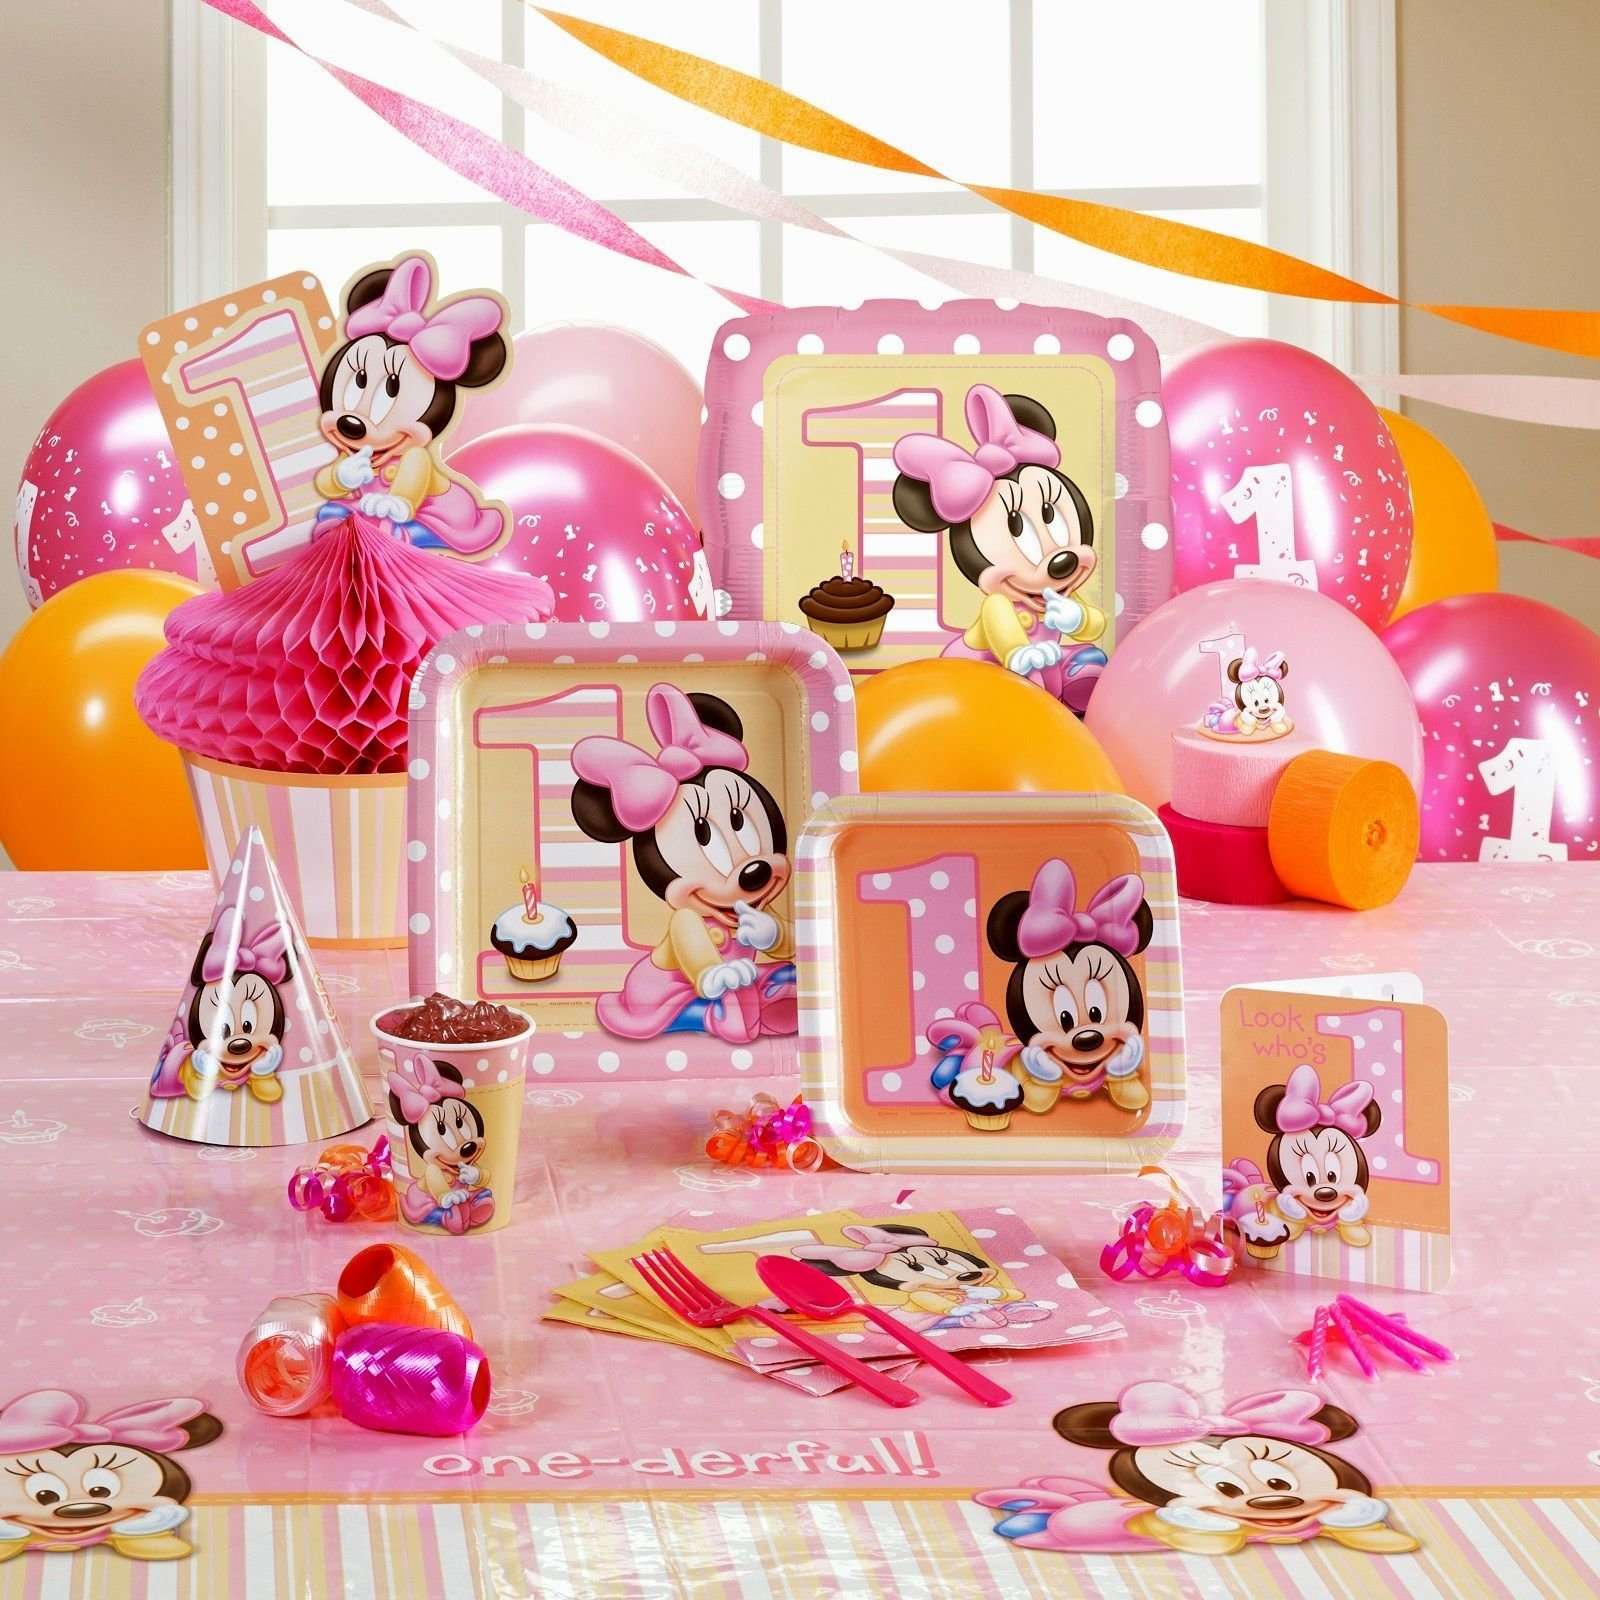 10 Nice Ideas For Baby First Birthday baby girl first birthday party ideas decorating of party 1 2020